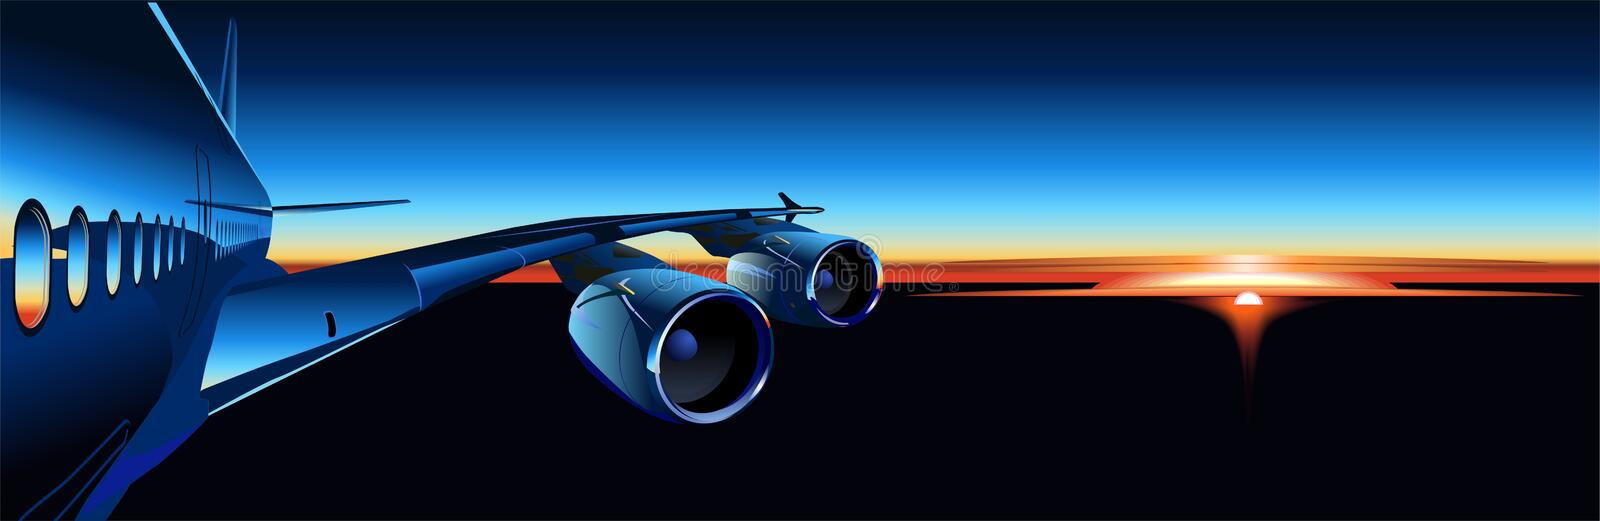 Vector airbus at sunrise royalty free illustration